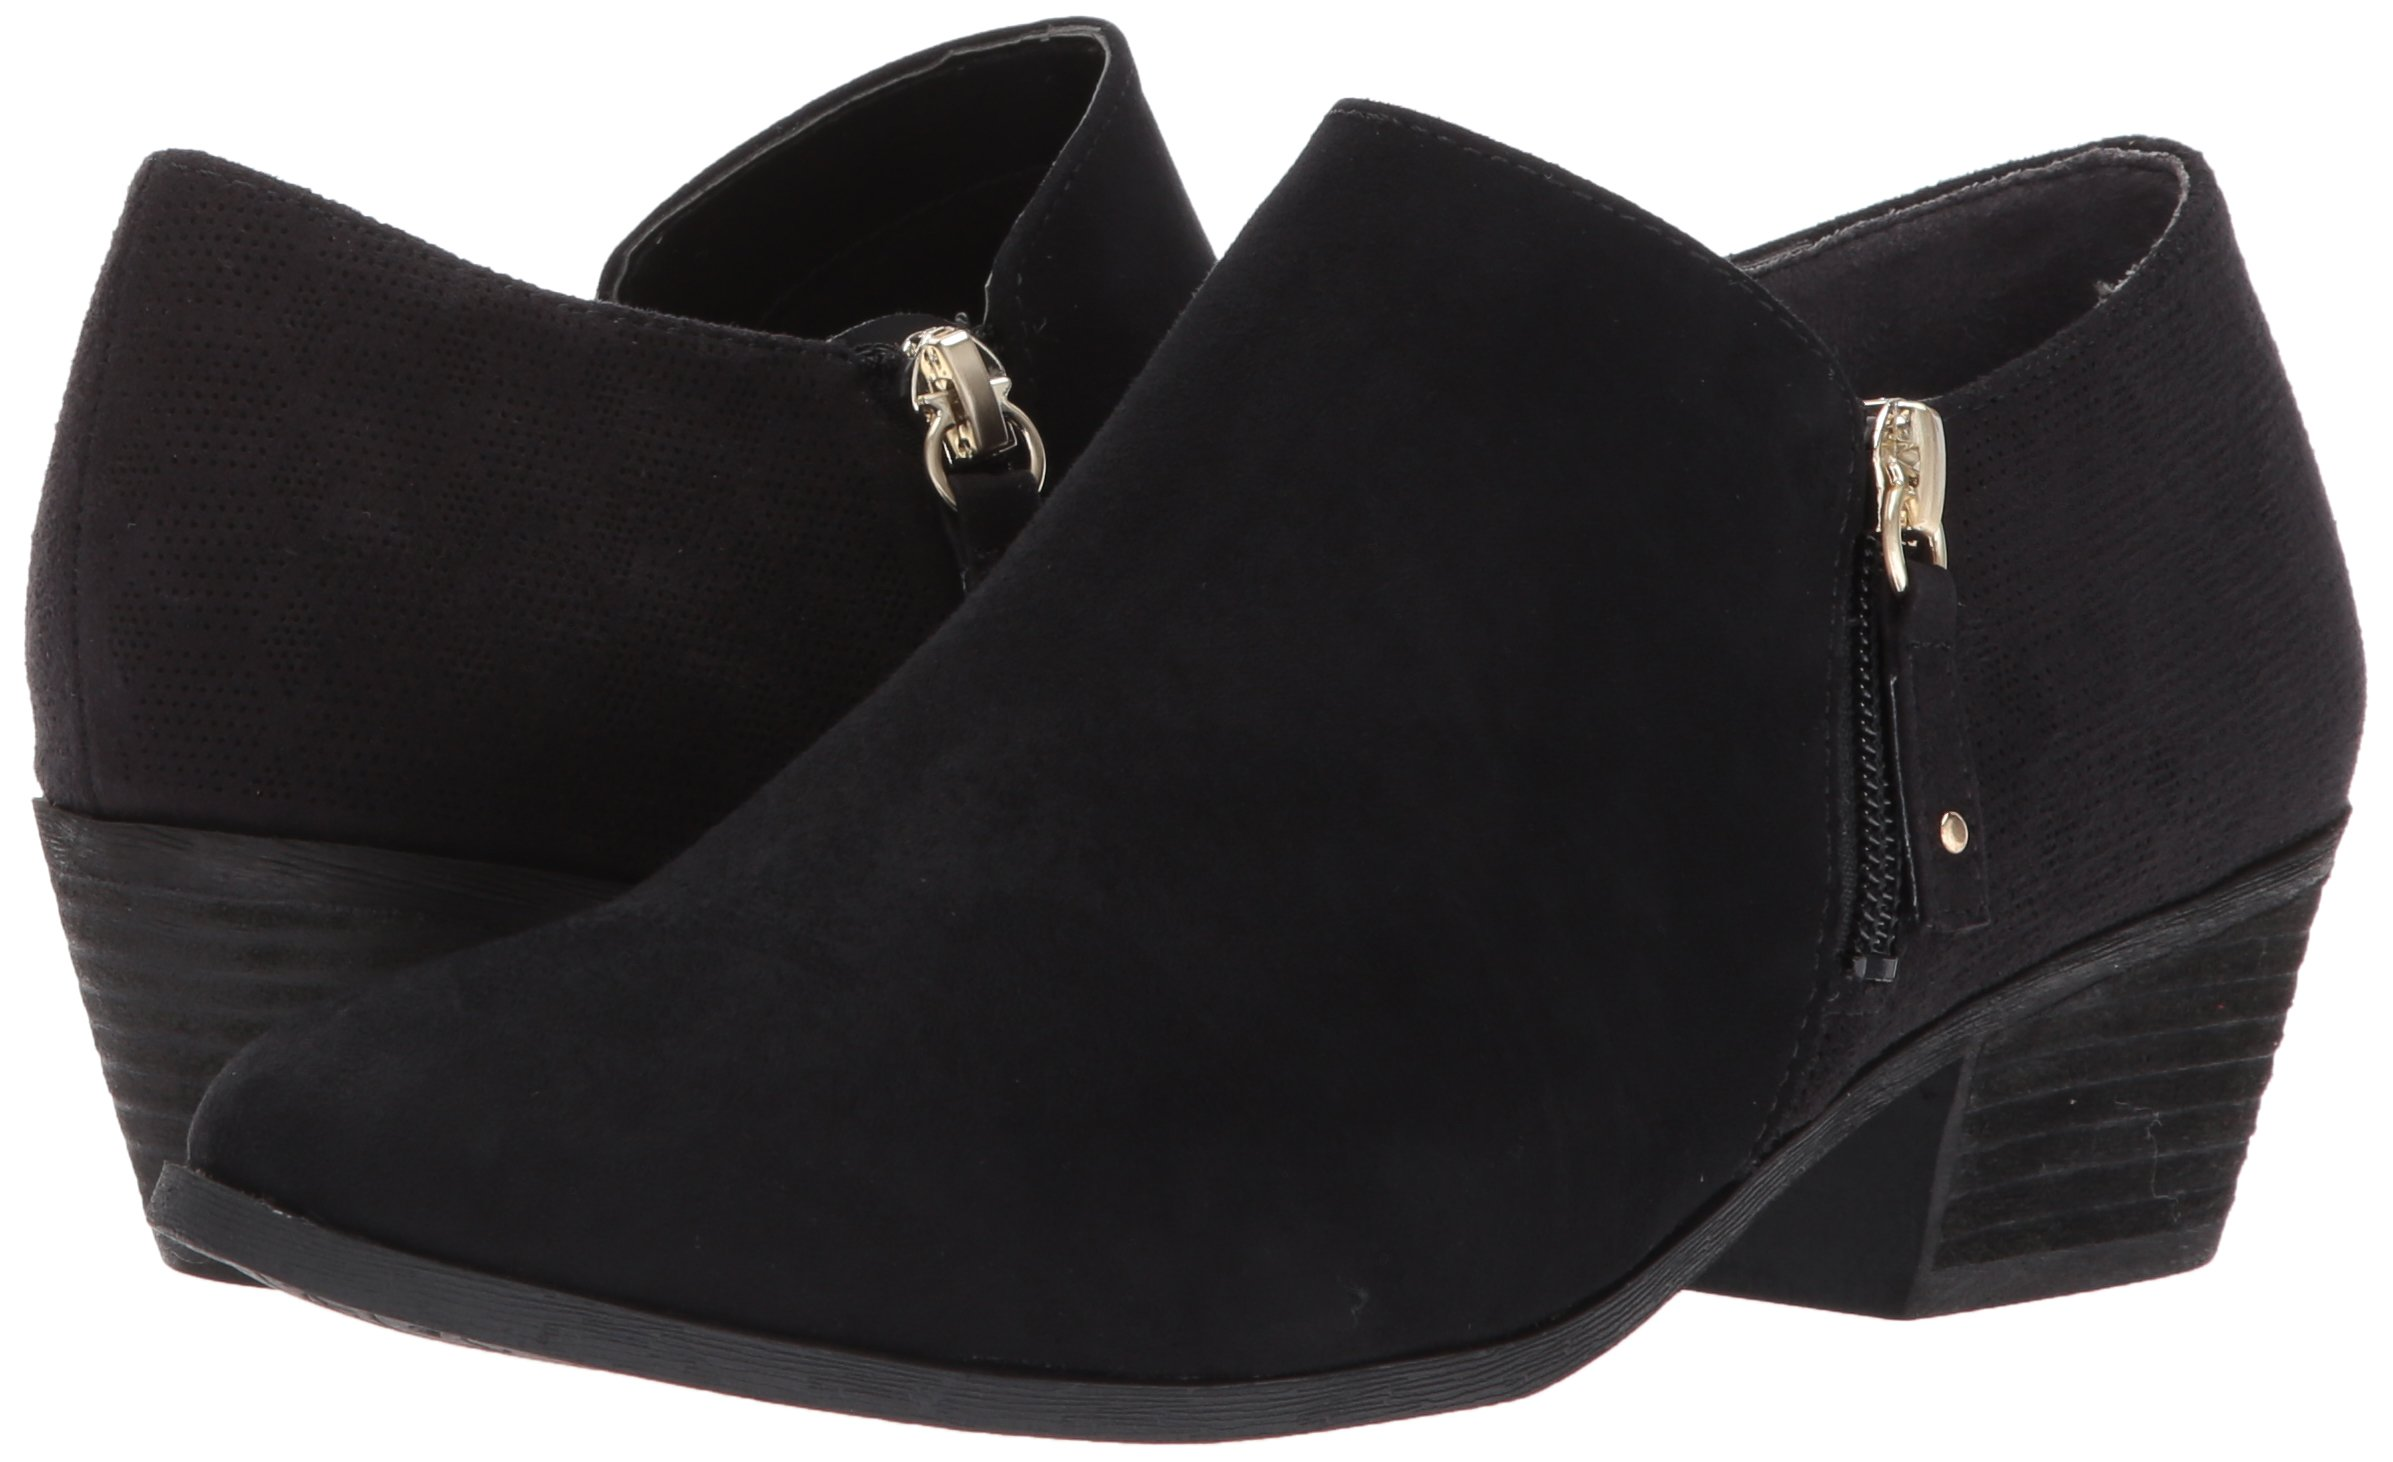 Scholls Shoes Womens Berry Ankle Boot Dr